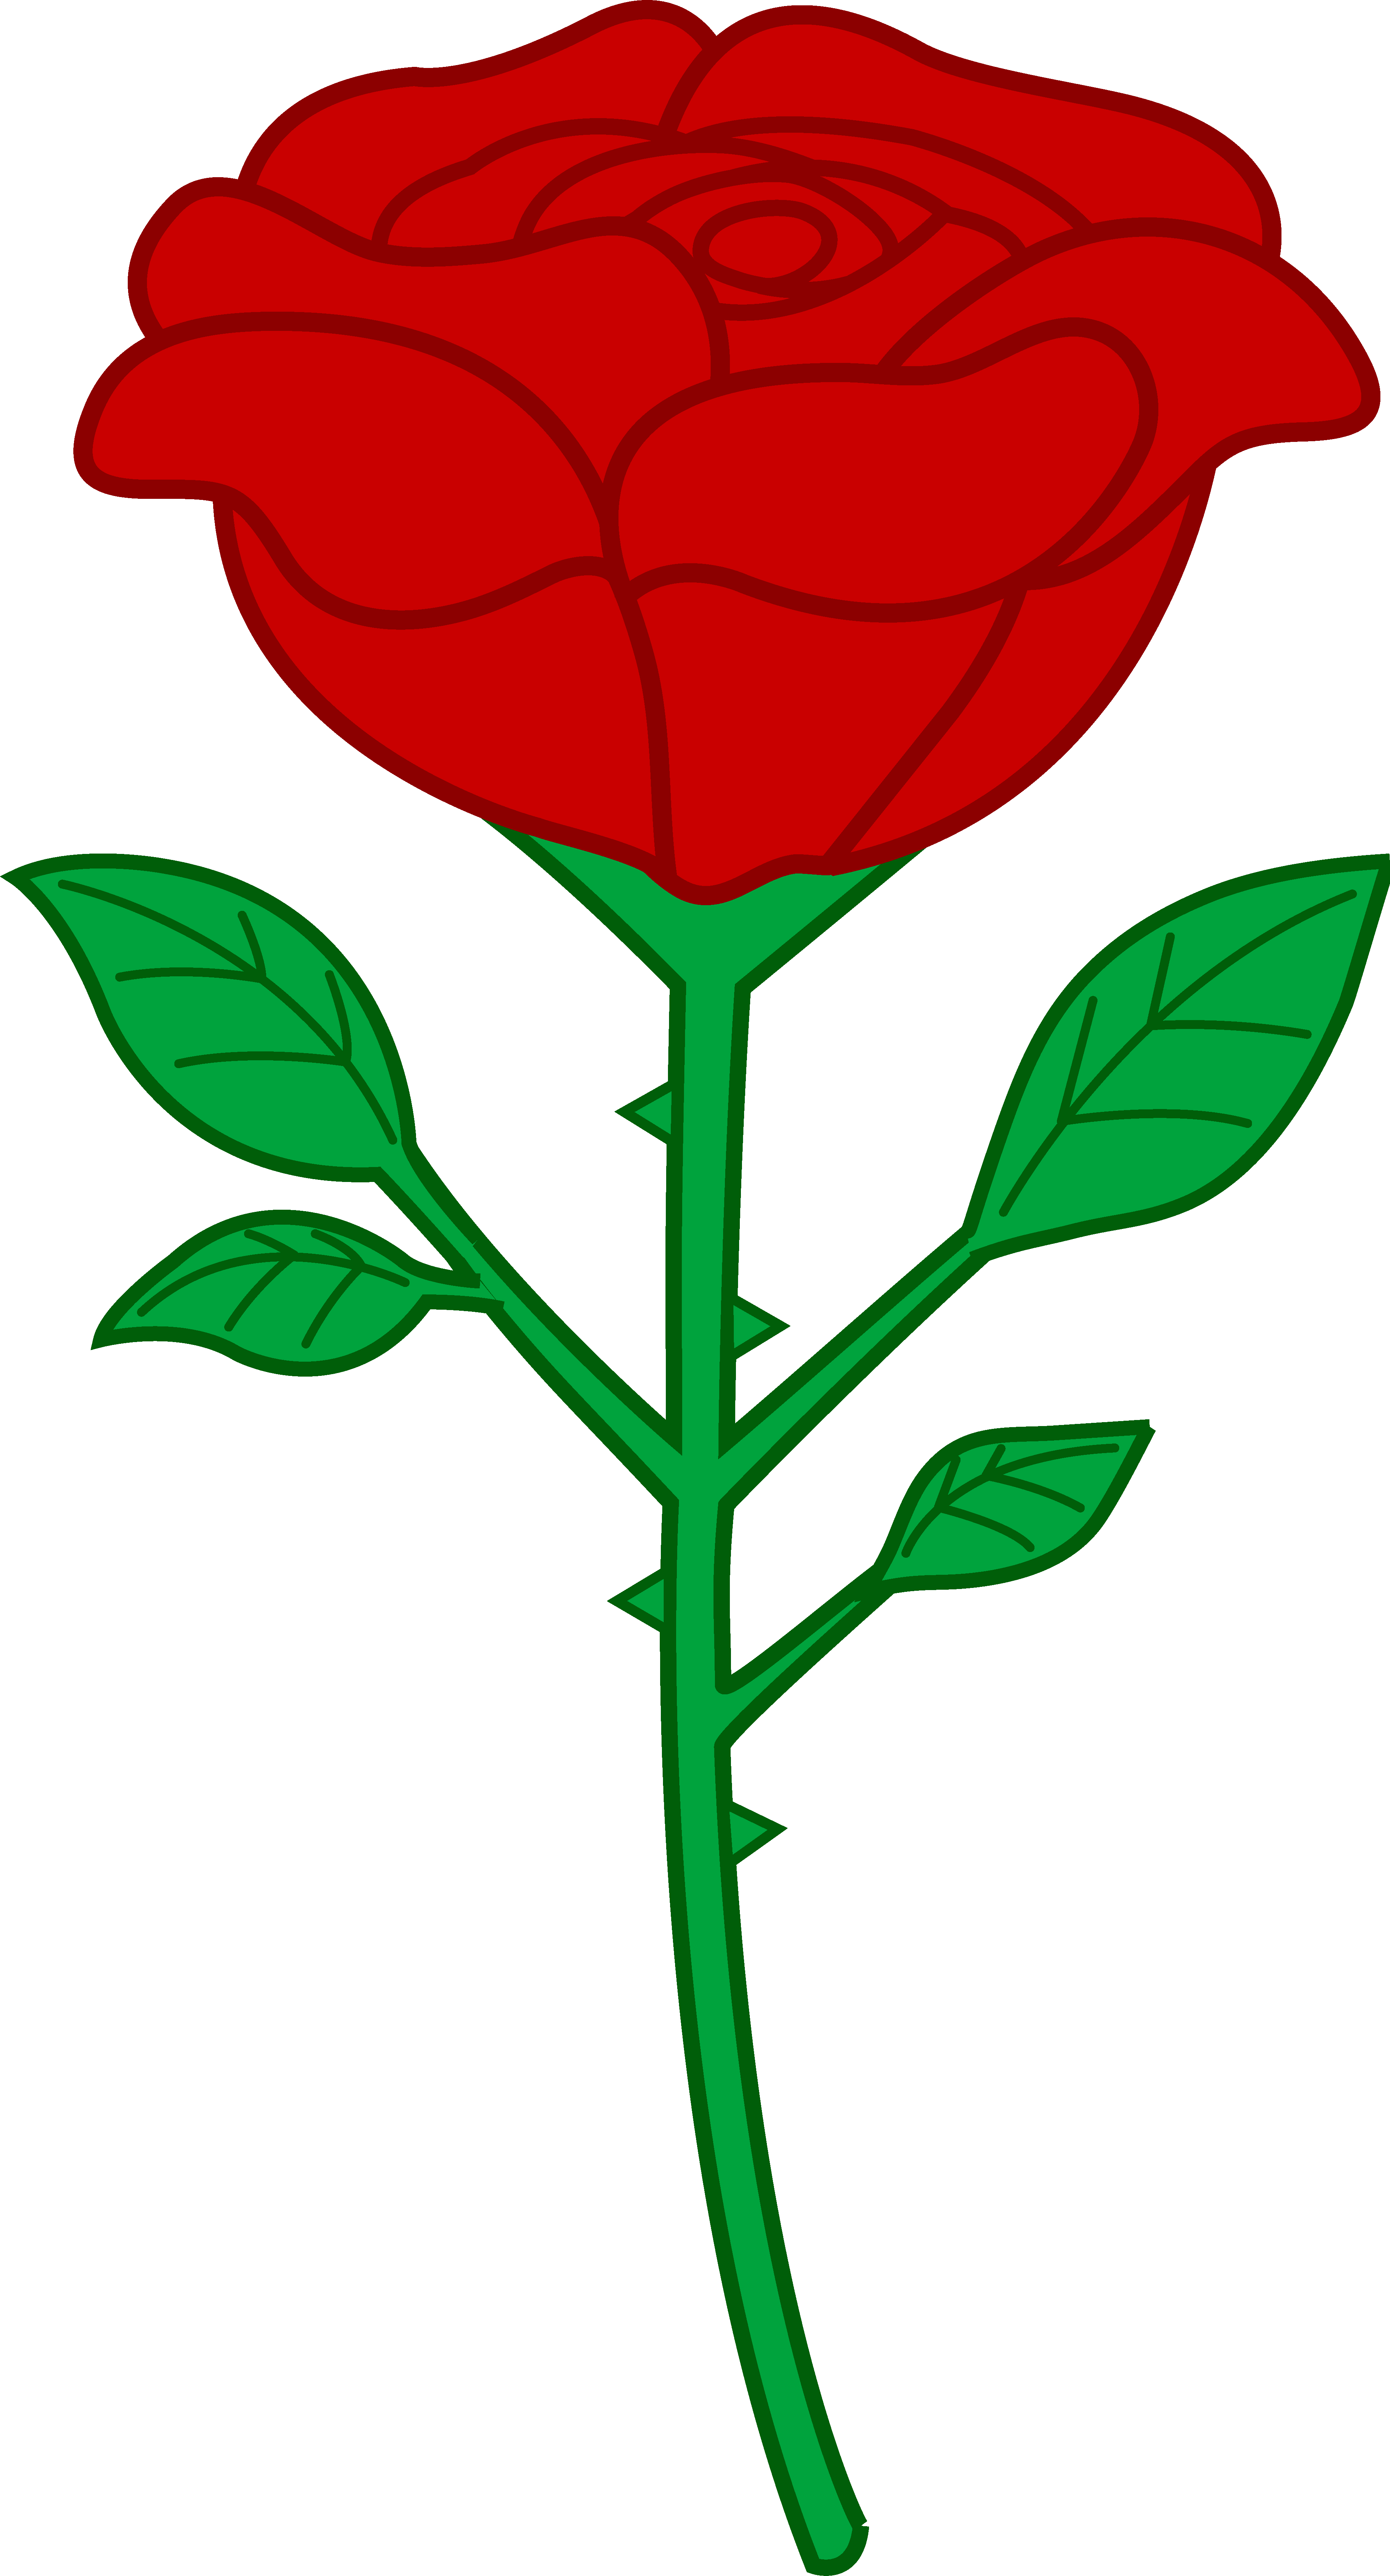 Rose clipart #3, Download drawings